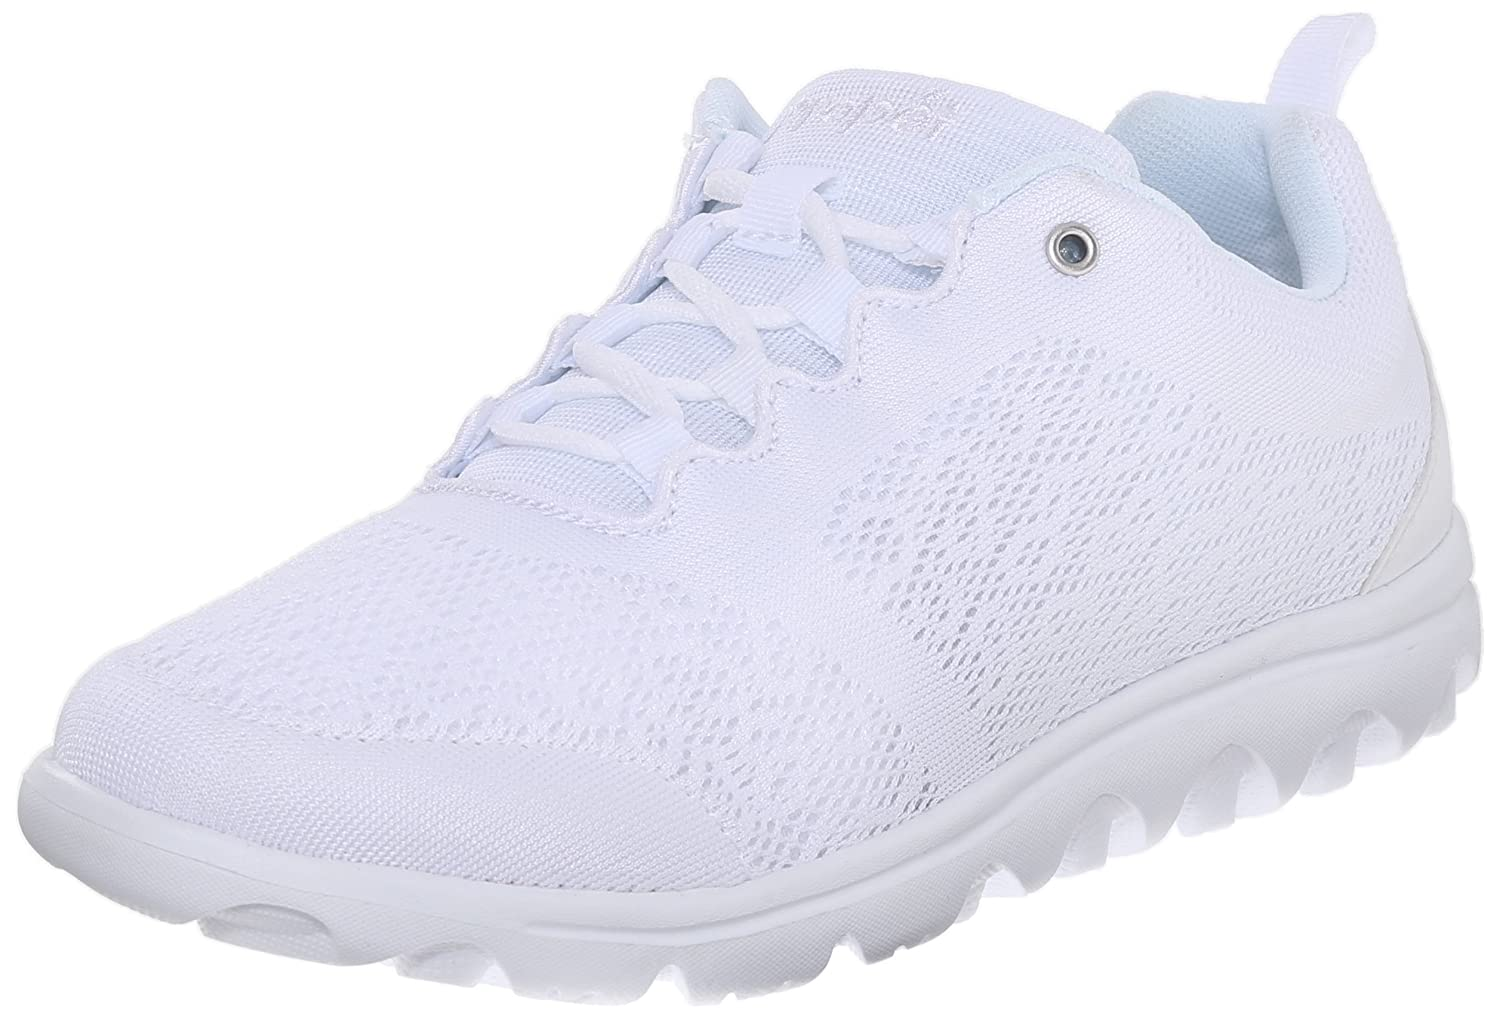 Propet Women's TravelActiv Fashion Sneaker B0118FIRPU 9.5 B(M) US|White